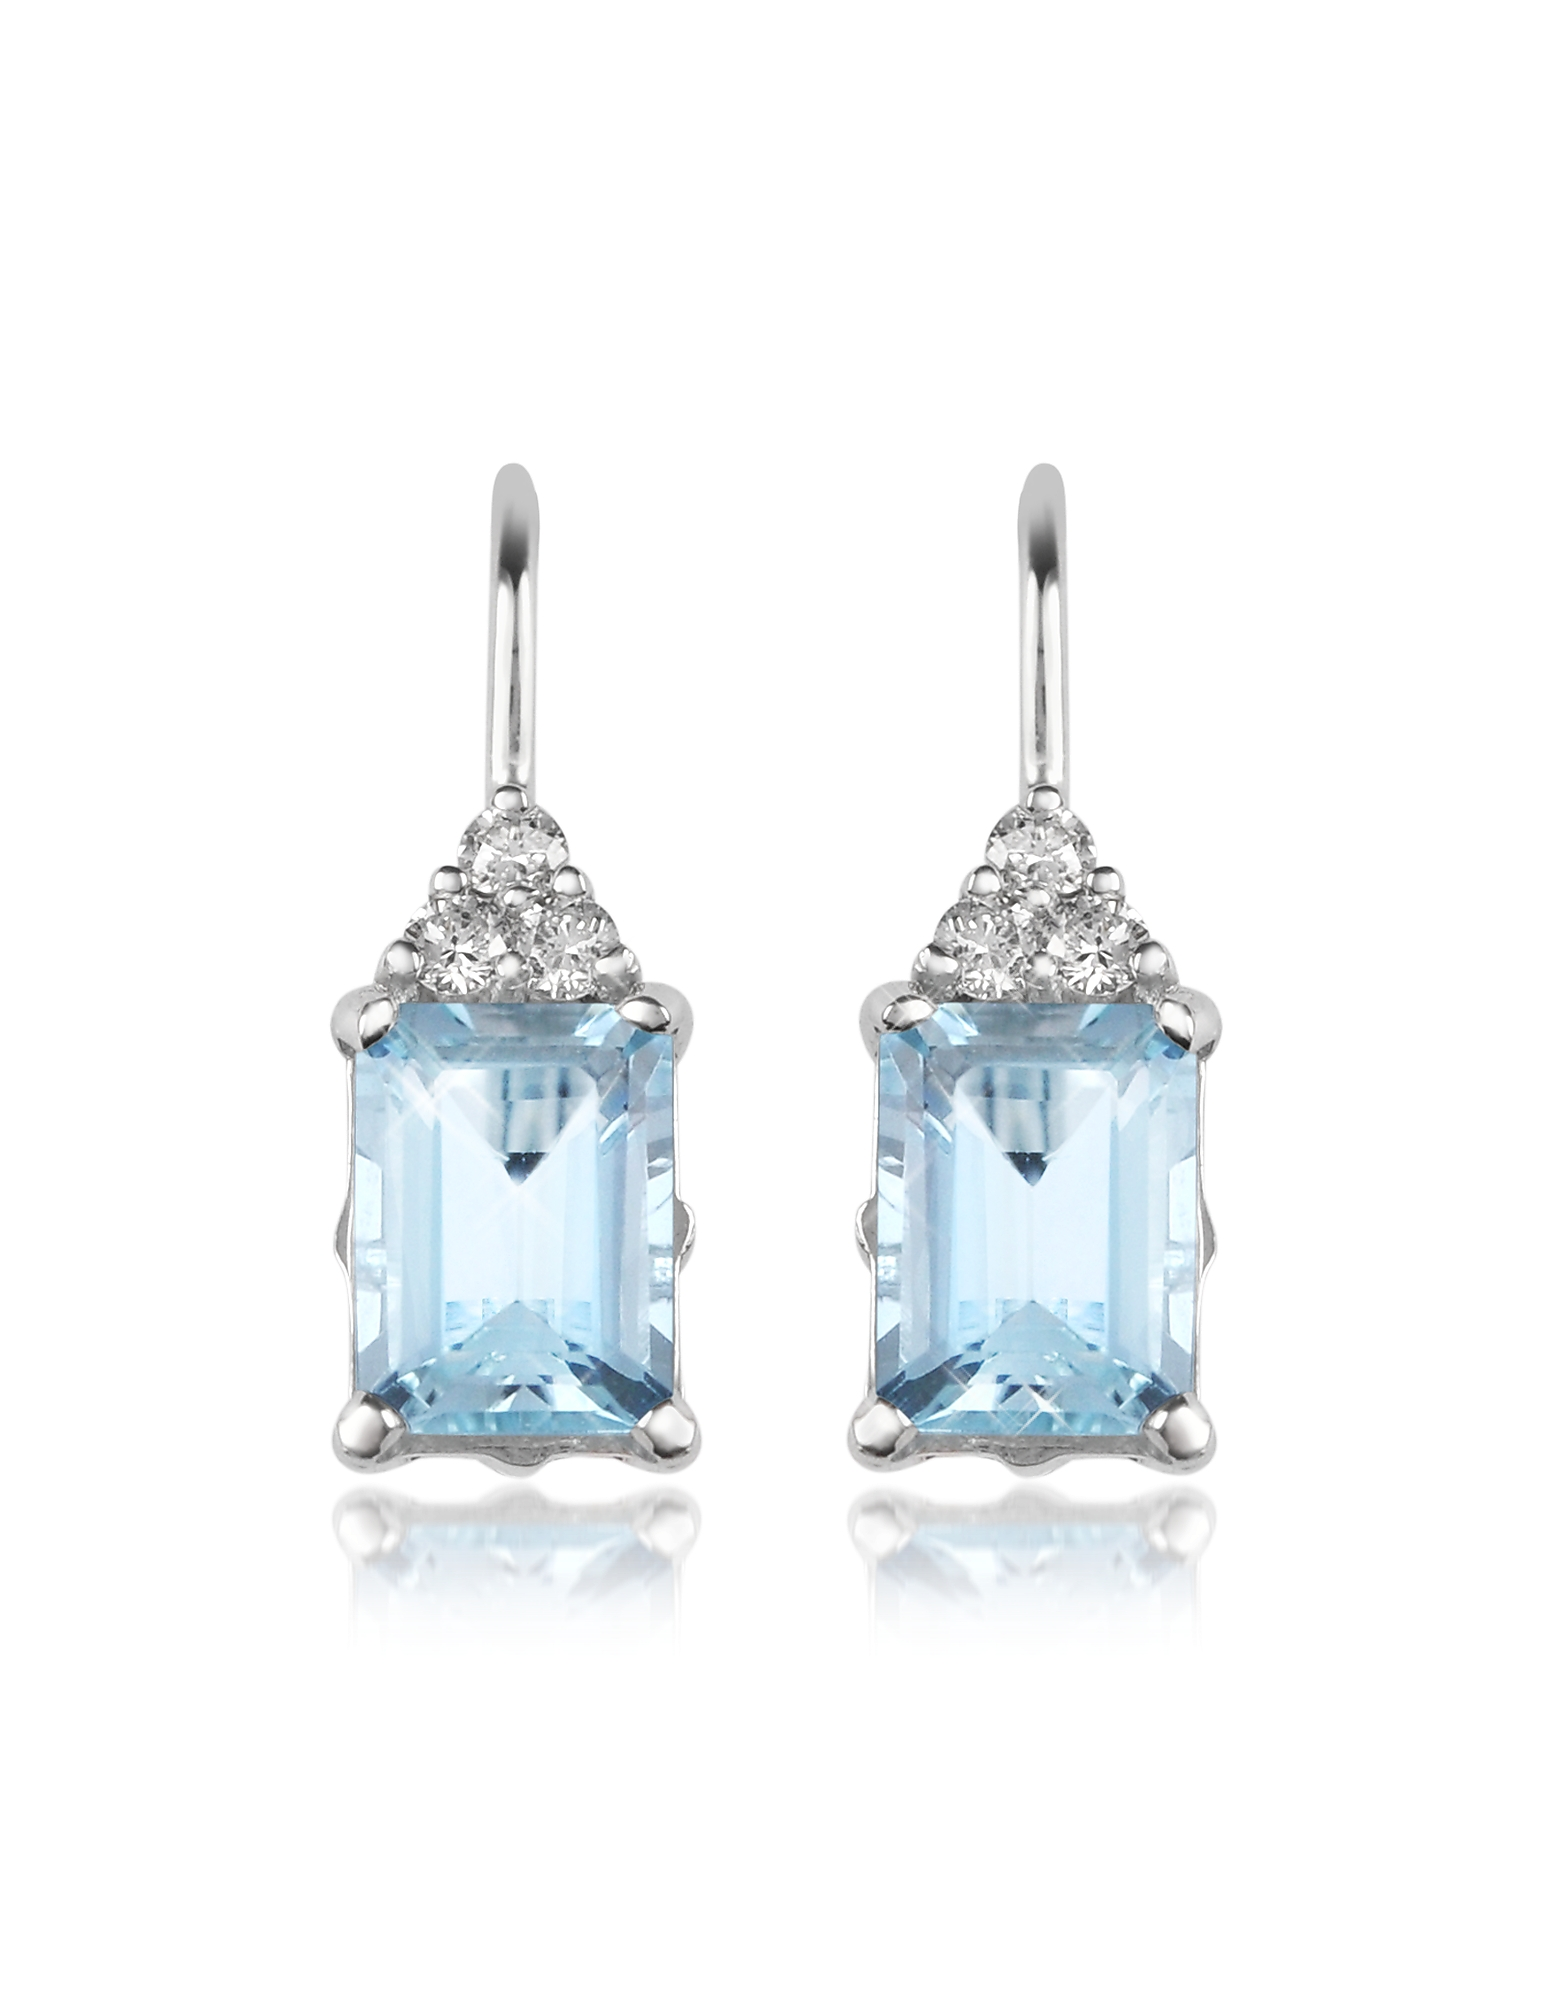 Incanto Royale Designer Earrings, Aquamarine and Diamond 18K Gold Drop Earrings